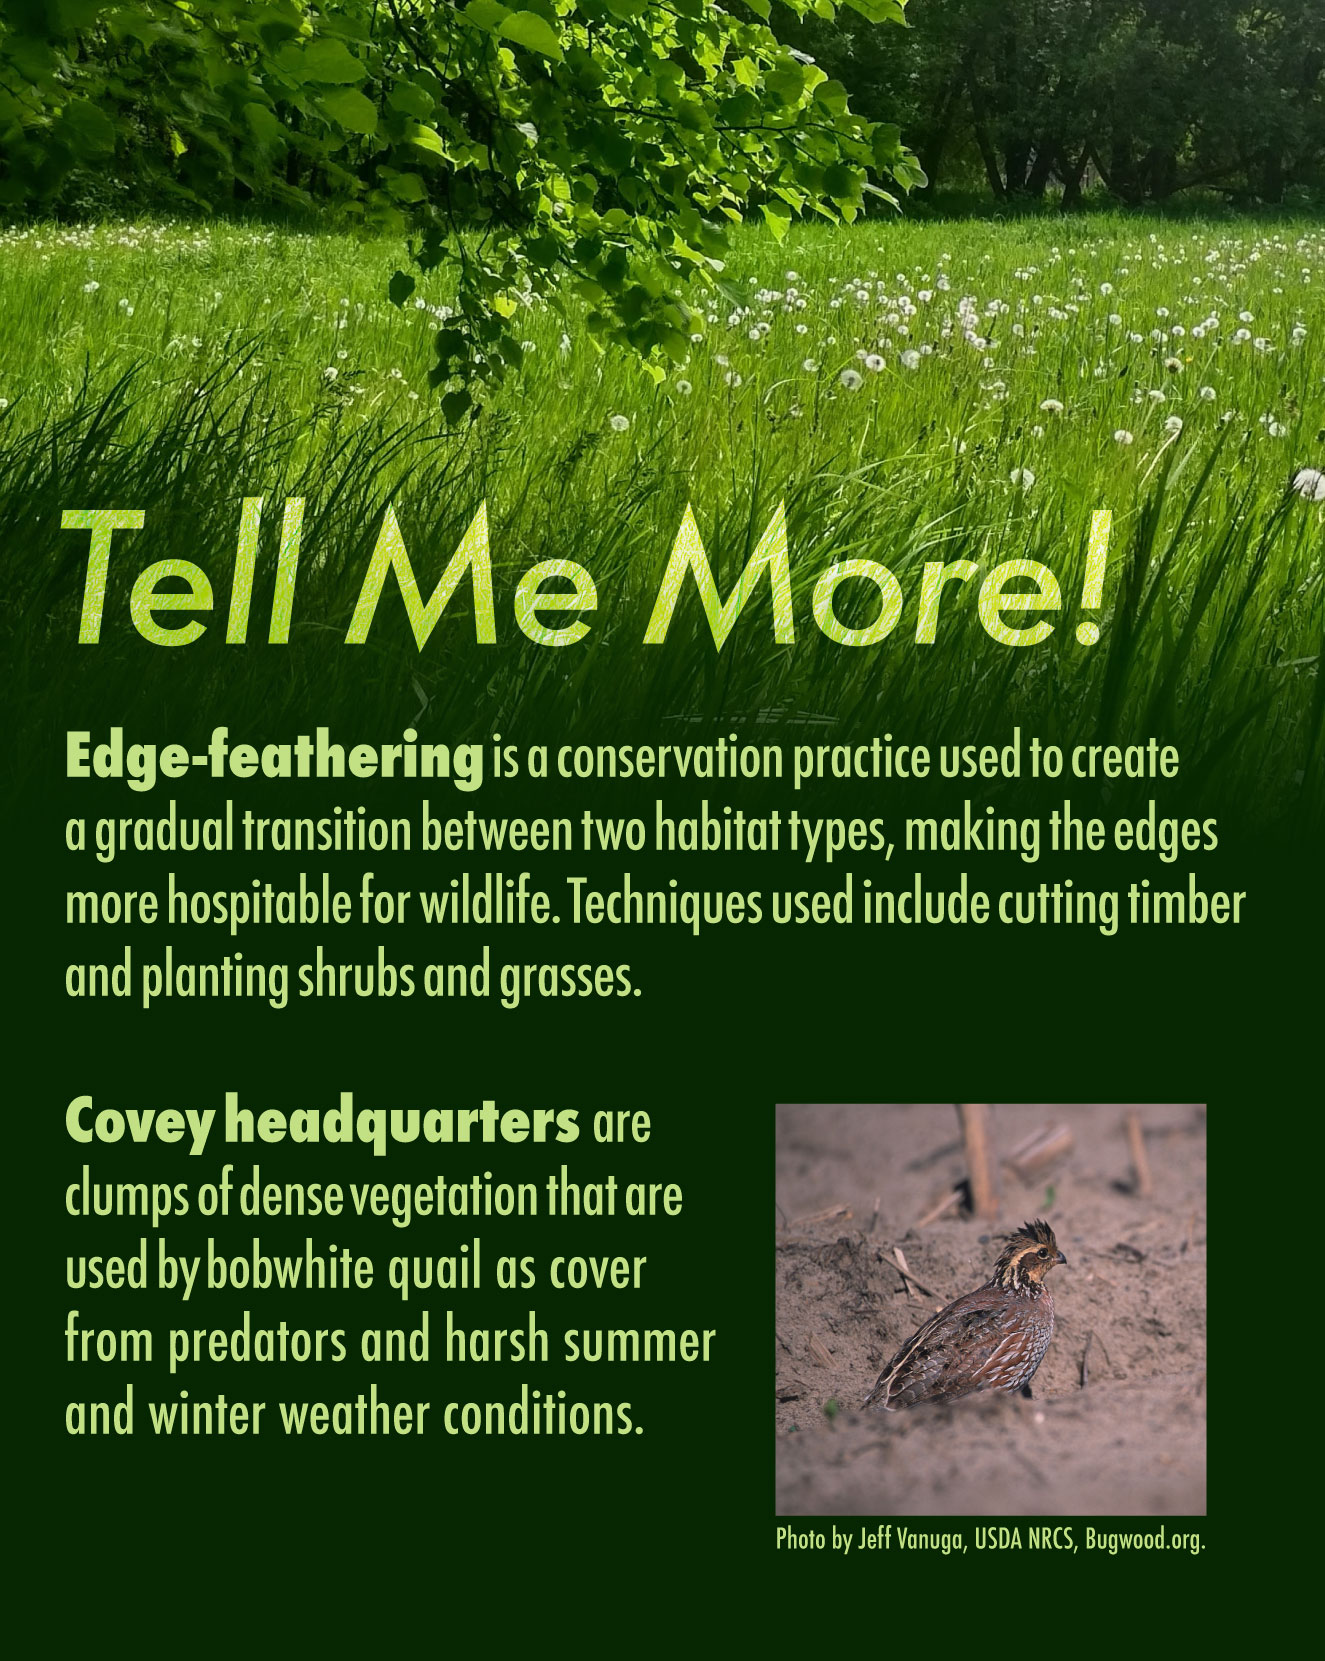 A graphic with text overlaying a photo of a green grassy area with trees in the background. The text explains that edge-feathering is a conservation practice used to create a gradual transition between two habitat types, making the edges for hospitable for wildlife. Techniques include cutting timber and planting shrubs and grasses. The text also explains that a covey headquarters are clumps of dense vegetation that are used by bobwhite quail as cover from predators and harsh summer and winter conditions. There is a photo of a mostly brown female bobwhite quail on the bottom right of the graphic.